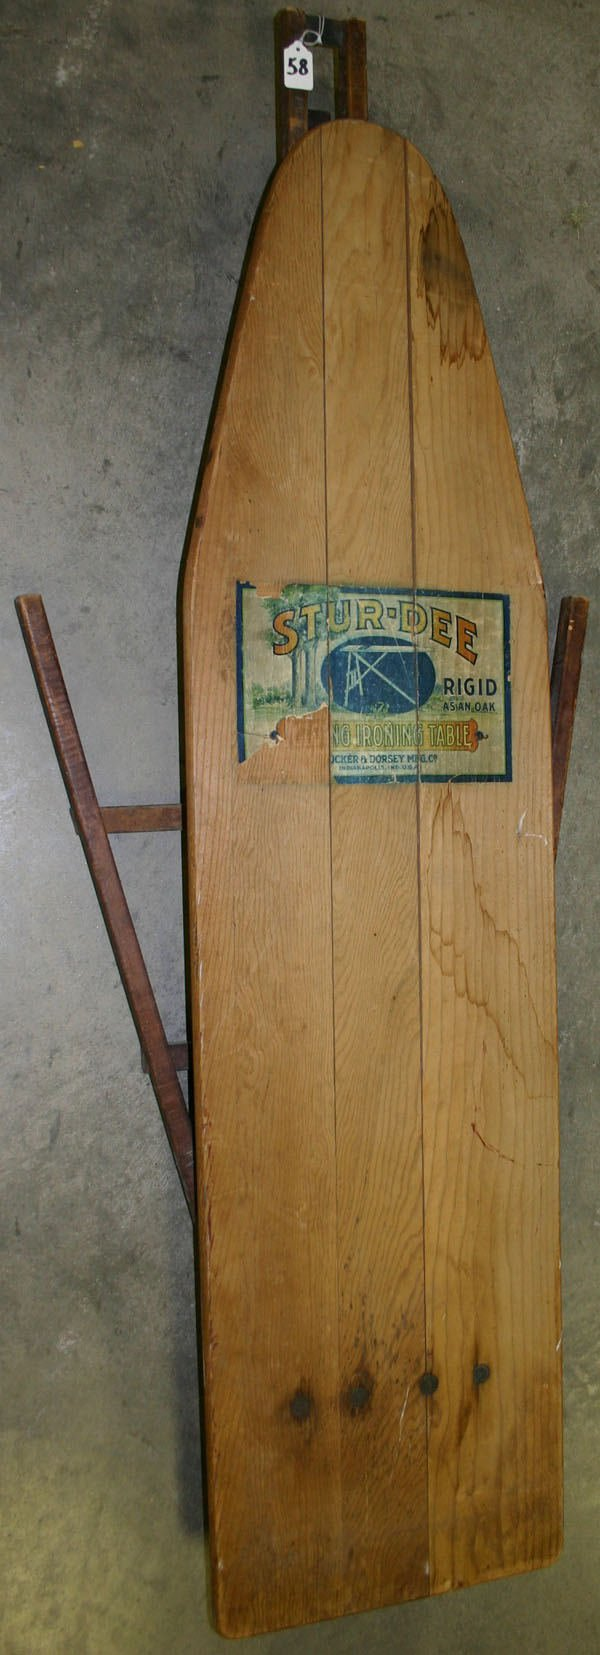 58: Early All Wooden Ironing Board, circa Turn of the C